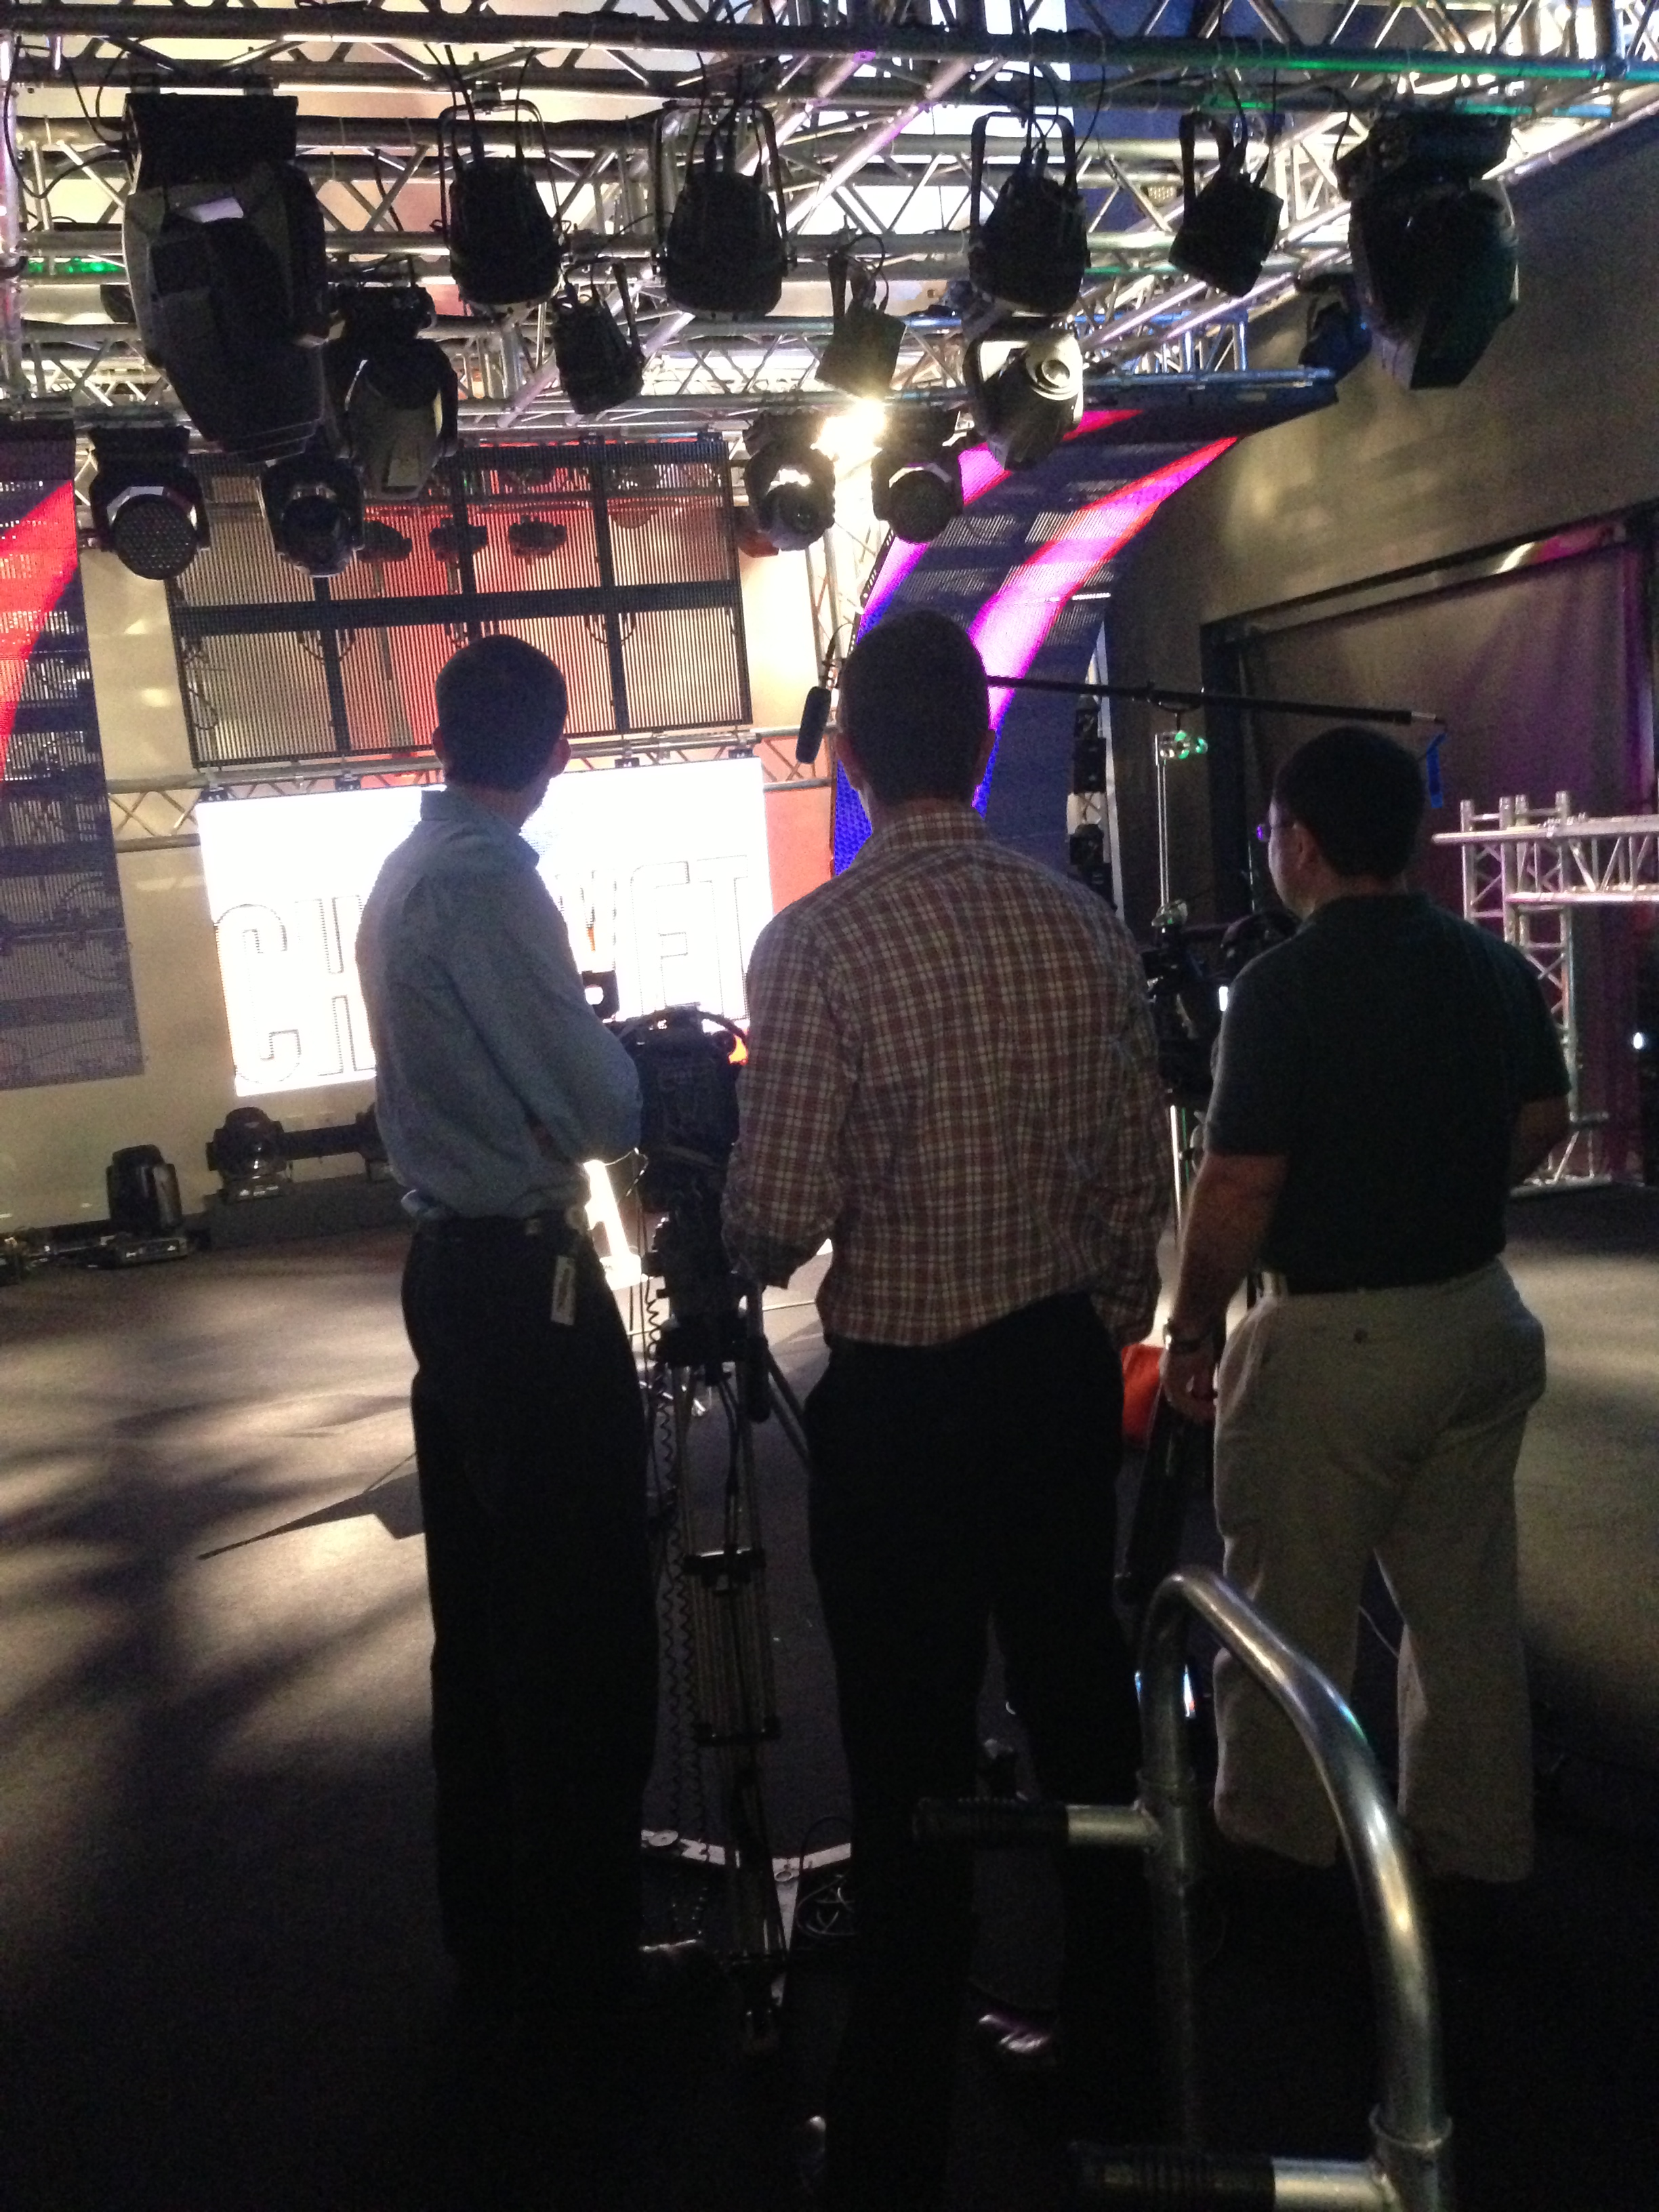 JM Family crew setting up in front of CHAUVET  Professional VIP video products under a full Chauvet rig.